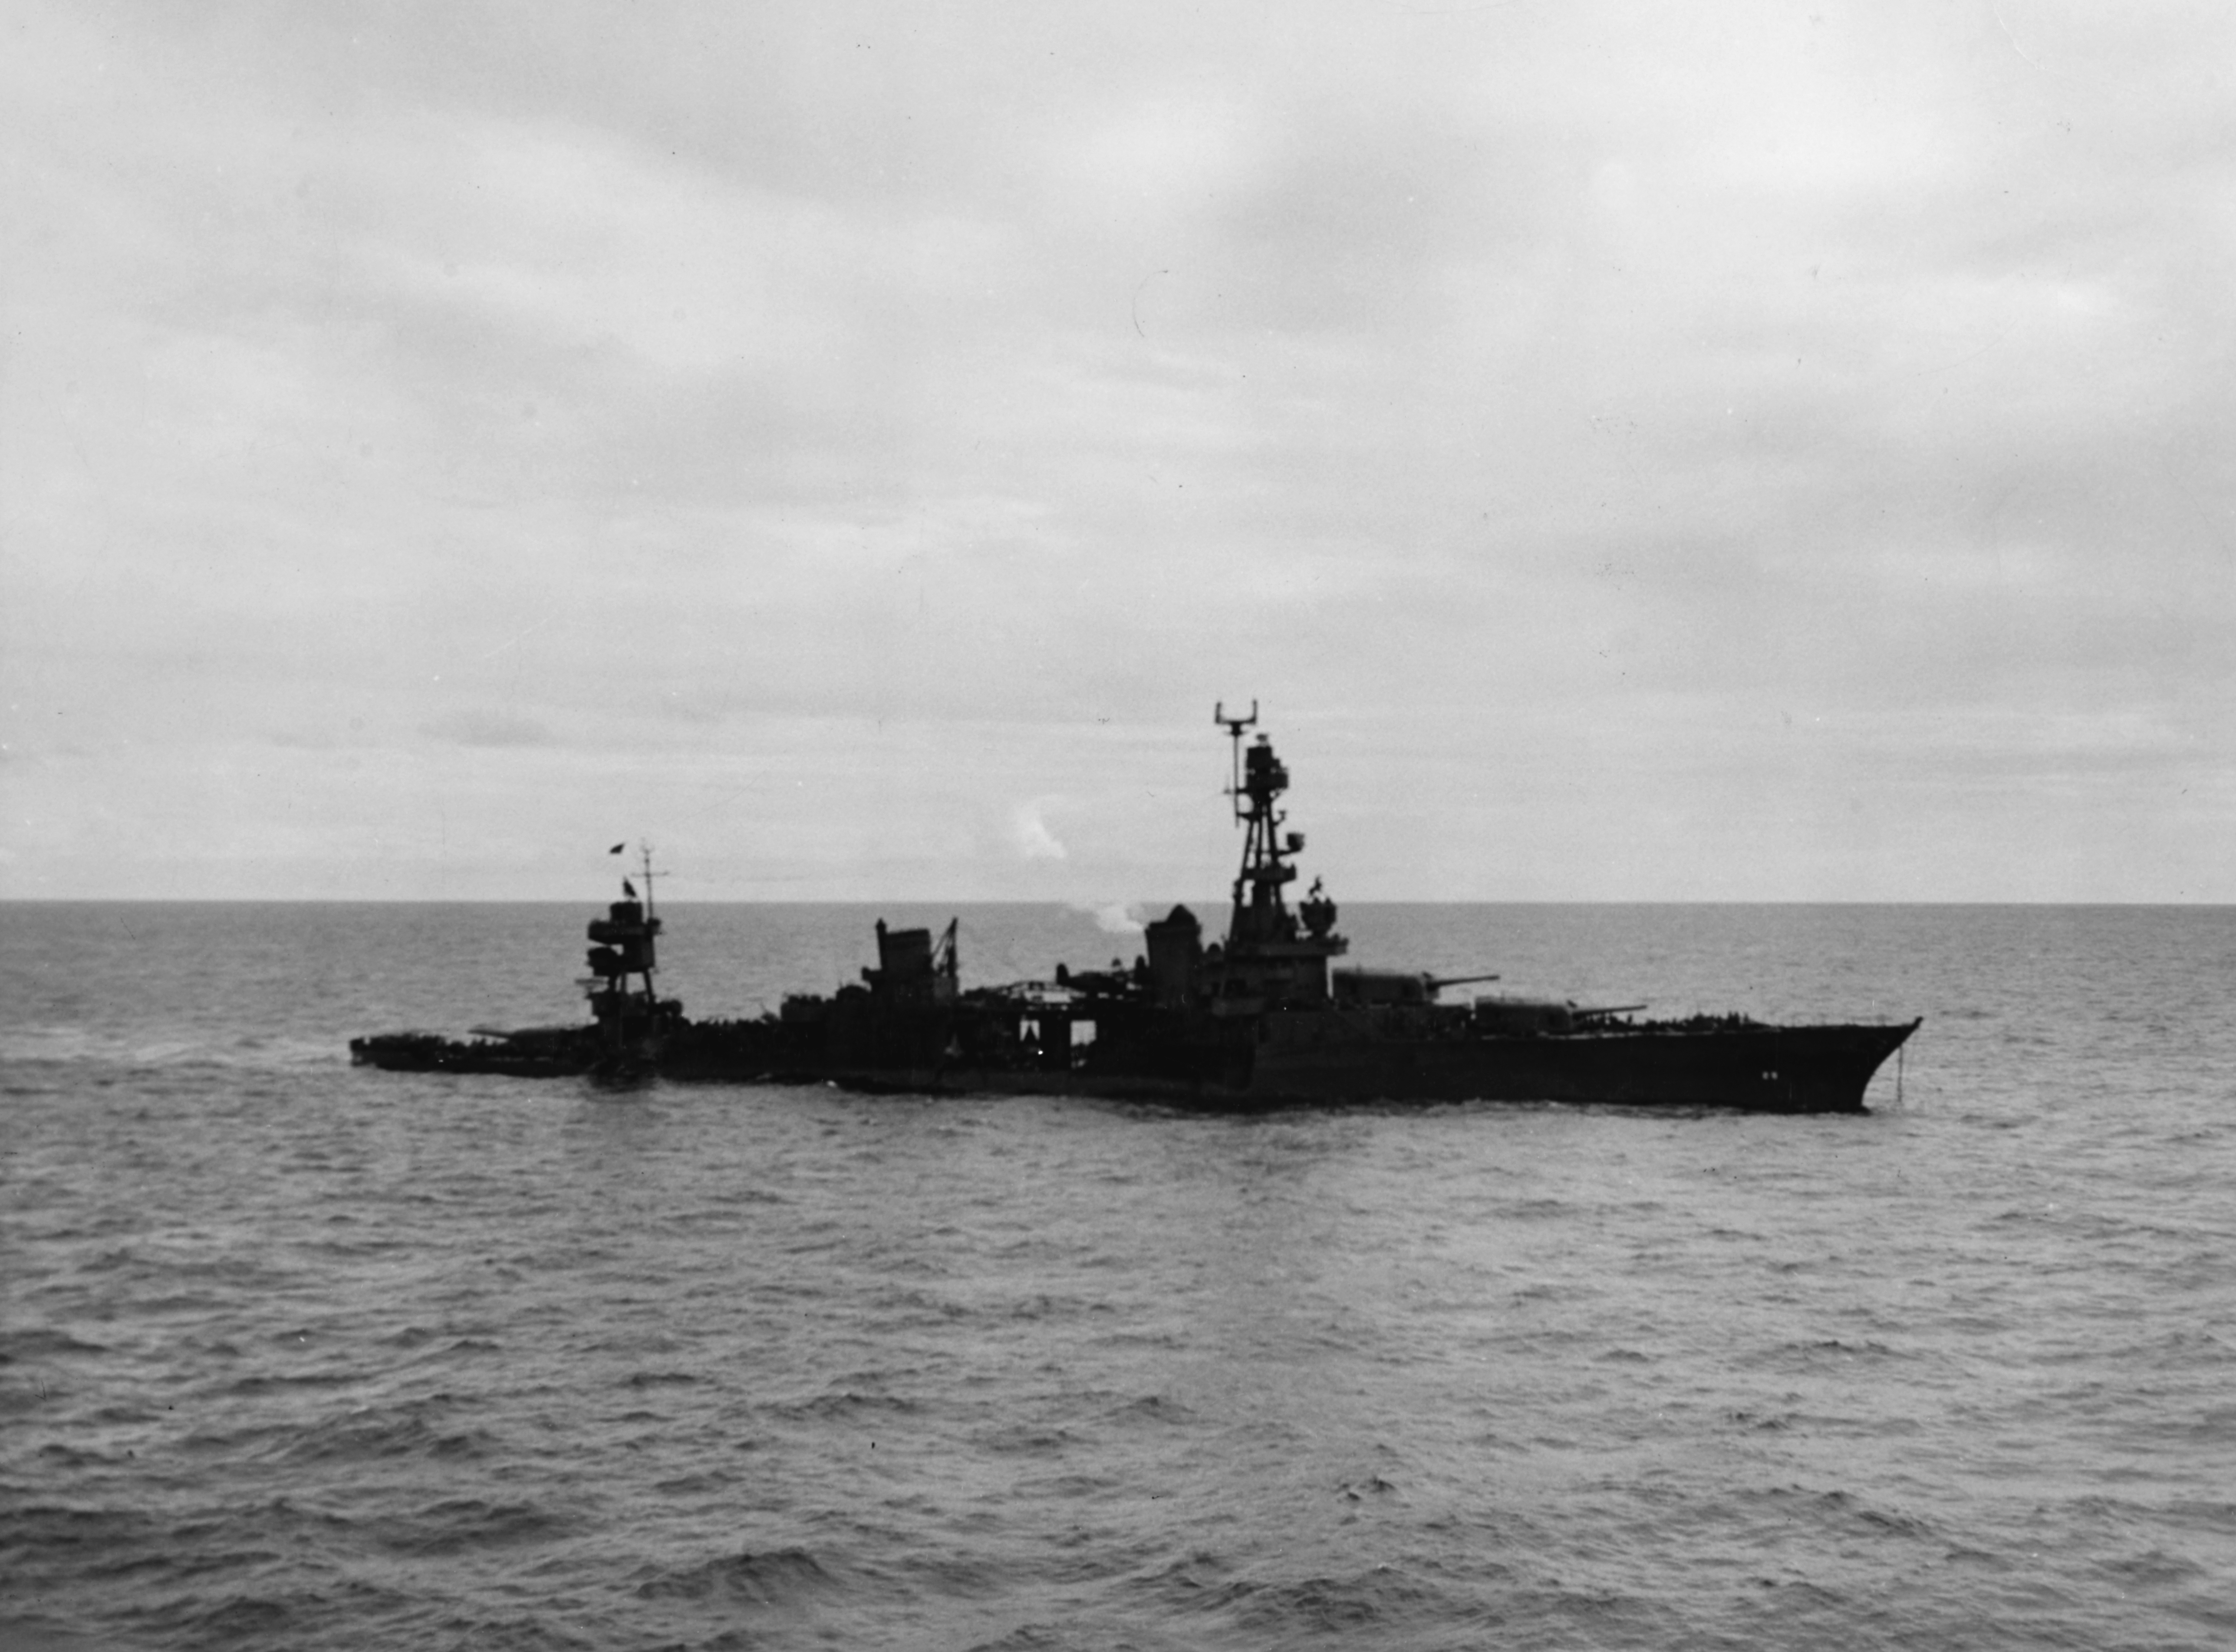 The U.S. Navy heavy cruiser USS Chicago (CA-29) low in the water on January 30, 1943, after she had been torpedoed by Japanese aircraft during the Battle of Rennell Island. U.S. Navy photo NH 55141